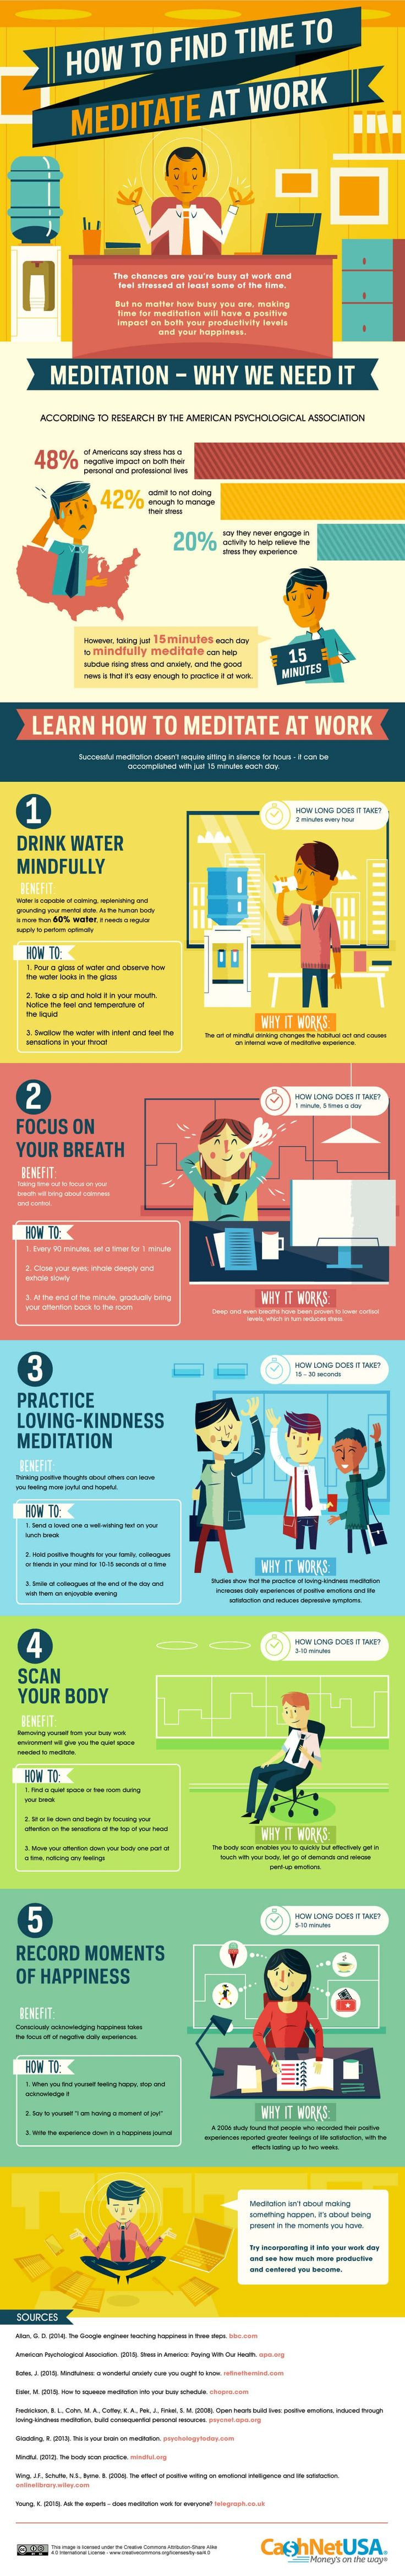 How to Find Time to Meditate At Work - #infographic